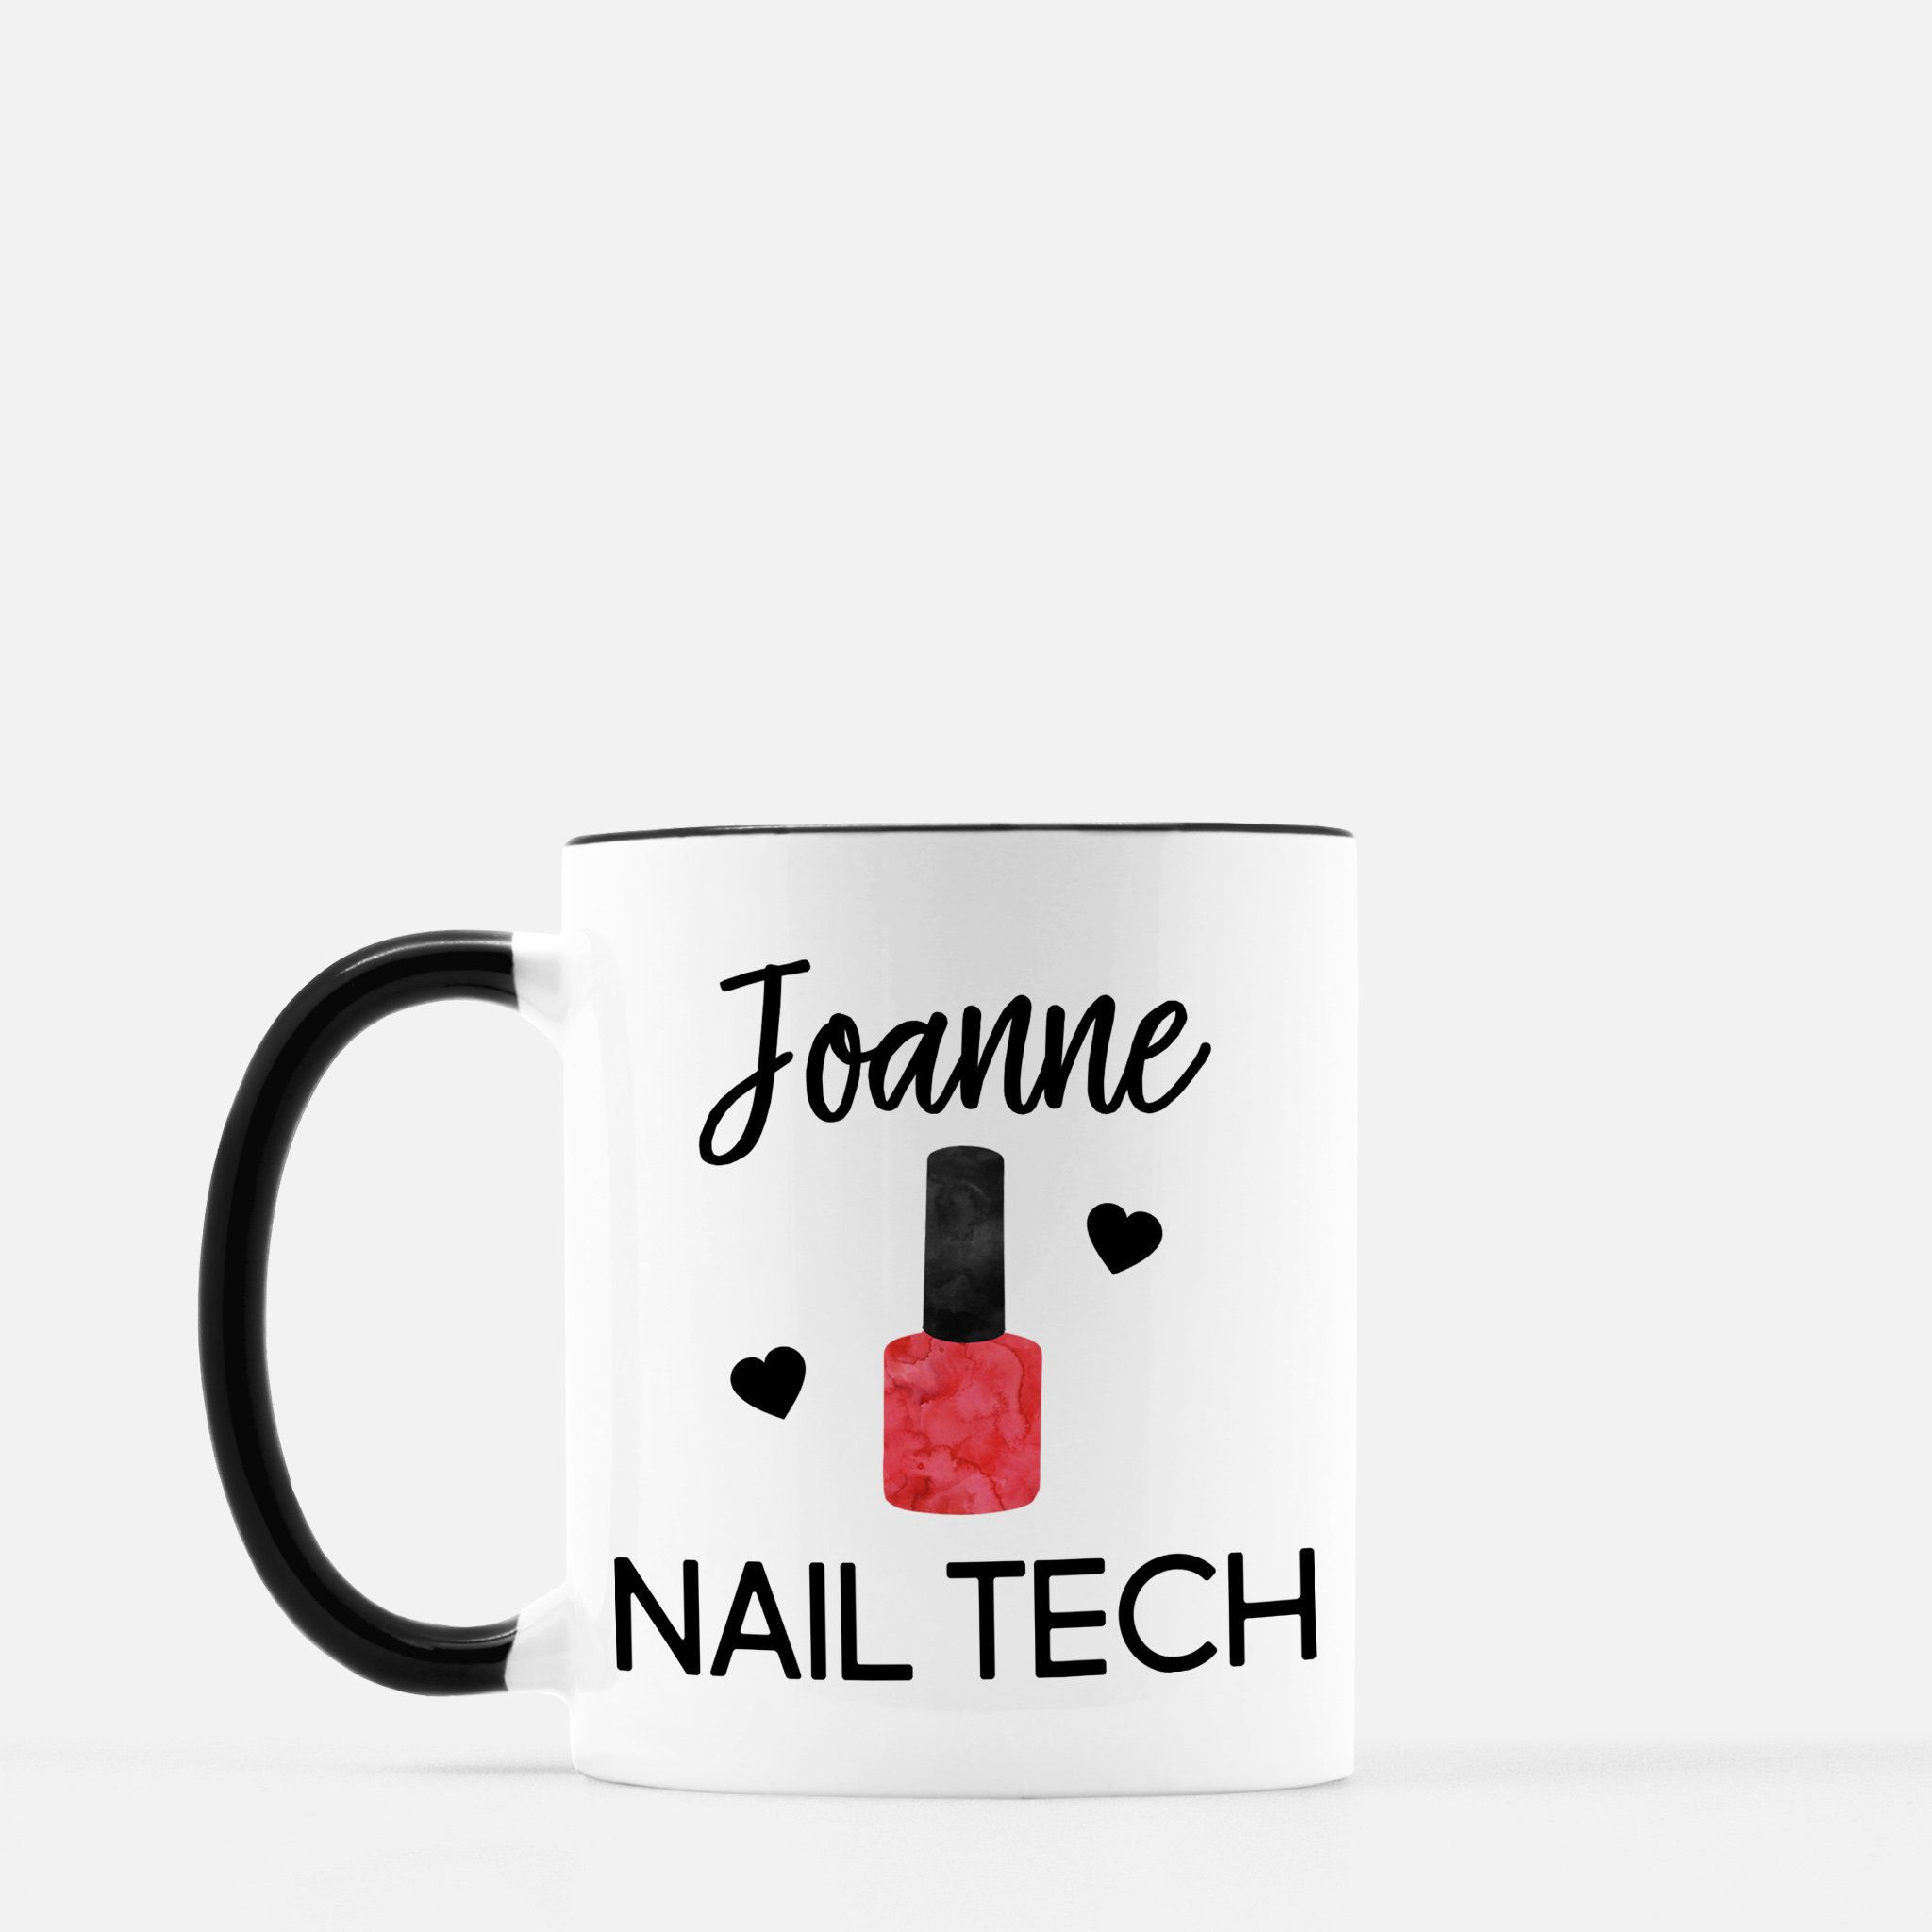 Custom Nail Technician Gift, Personalized Gifts for Nail